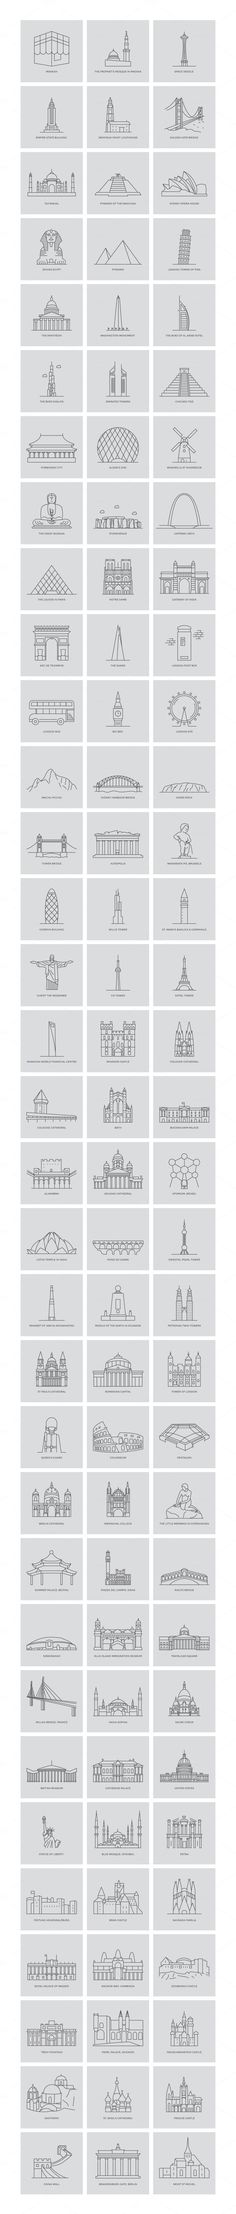 99 World Landmarks Illustration by Creative Stall on @creativemarket